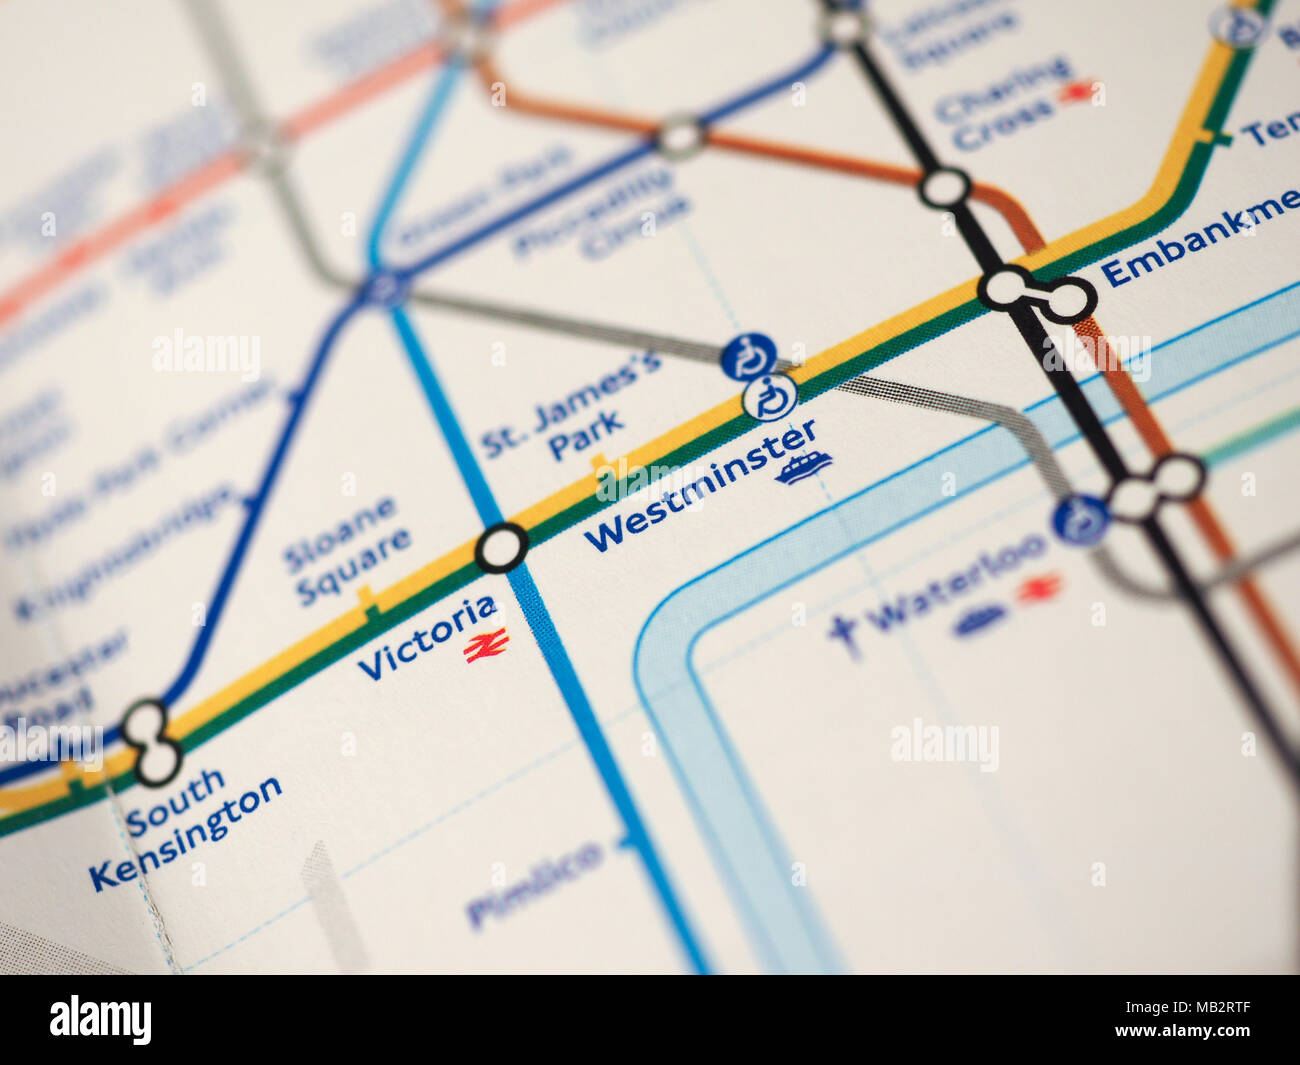 London Uk Circa 2018 Map Of London Underground Tube Stations With Selective Focus On Westminster Station For The Houses Of Parliament Stock Photo Alamy